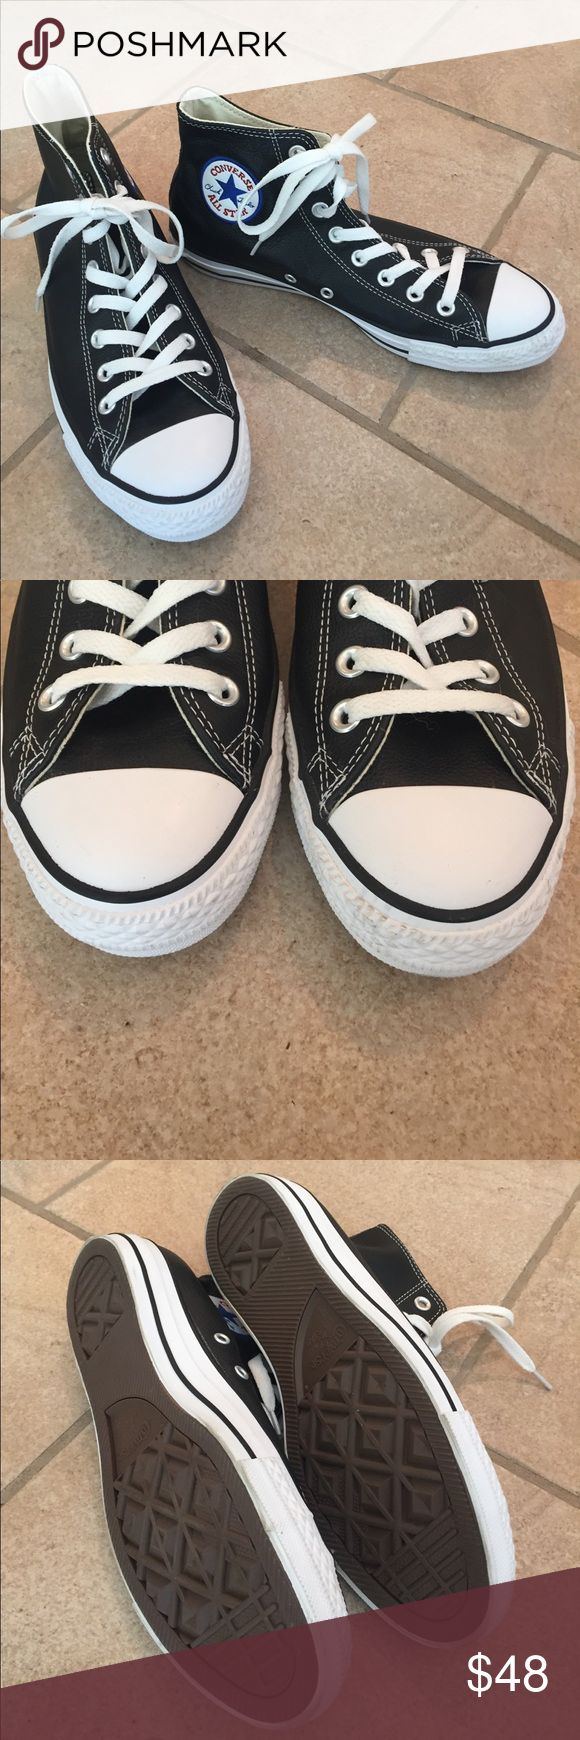 Converse Chuck Taylor Leather High Tops New Without Tags! No blemishes! Size7 1/2 Men / 9 1:2 Women Converse Shoes Sneakers